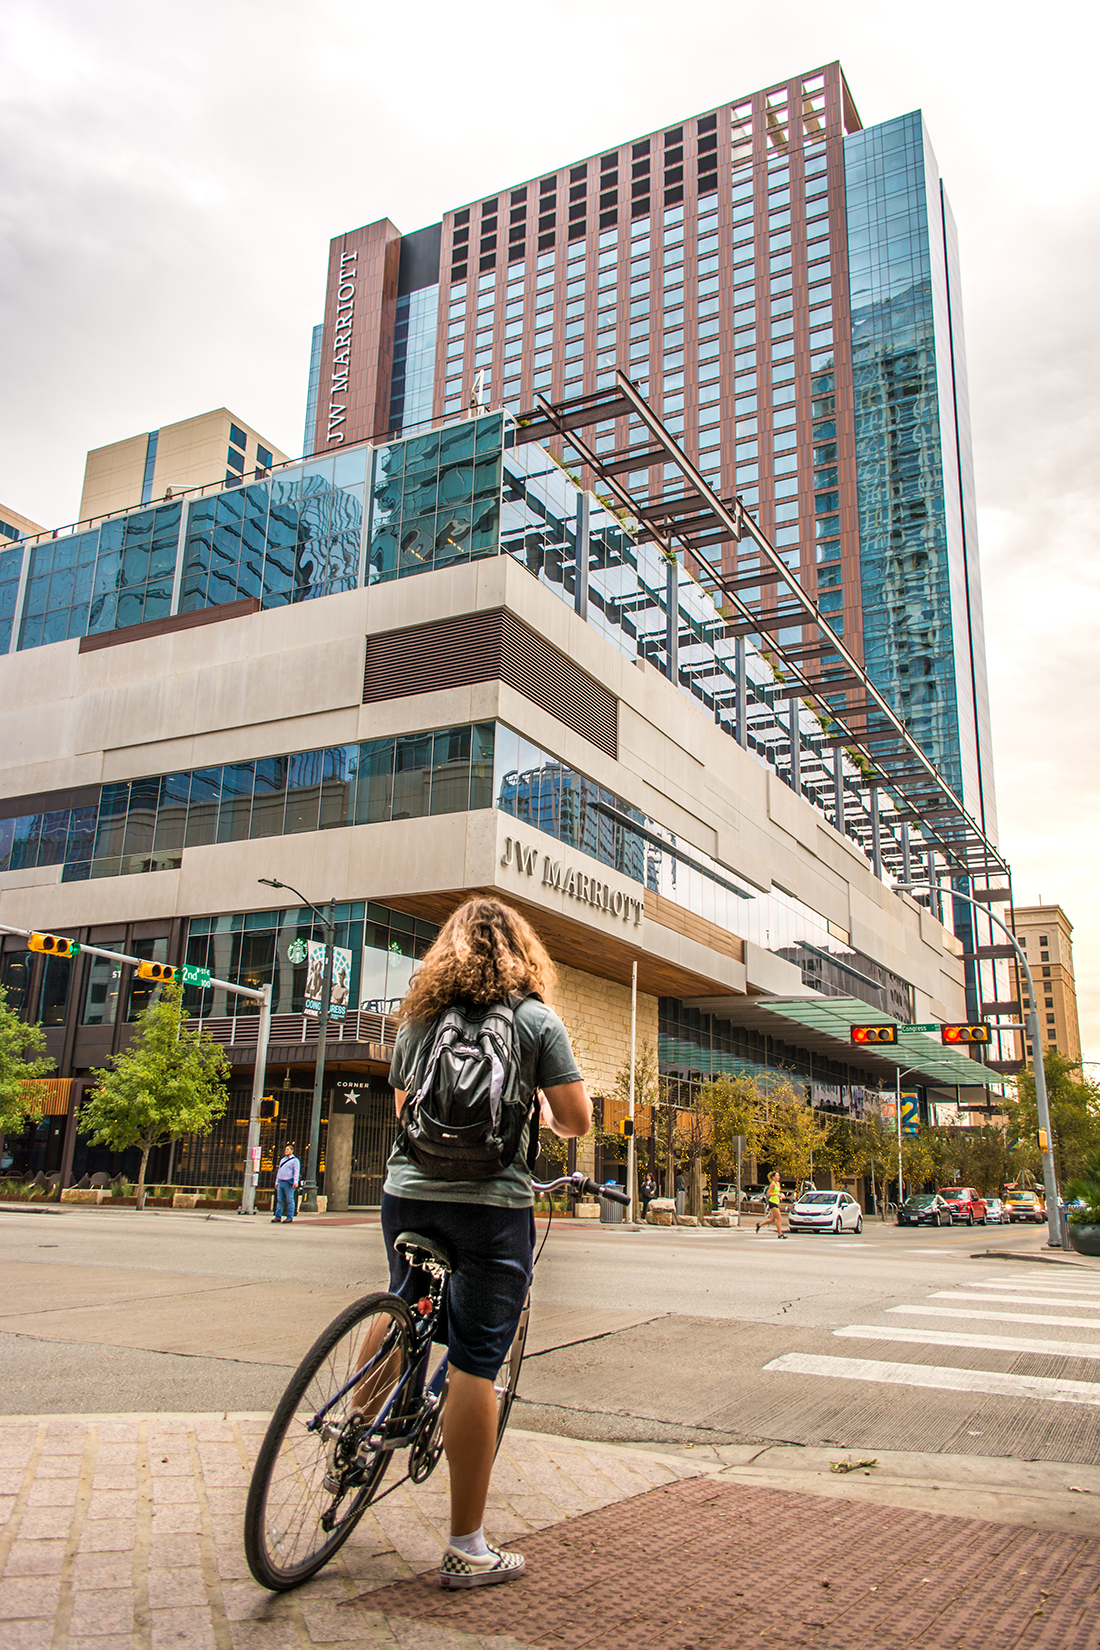 The JW Marriott makes great use of it's surrounding sidewalks with sidewalk open air seating for it's Corner restaurant. Features like these help blur the line between inside and outside making building more accessible and bringing new life to city streets.